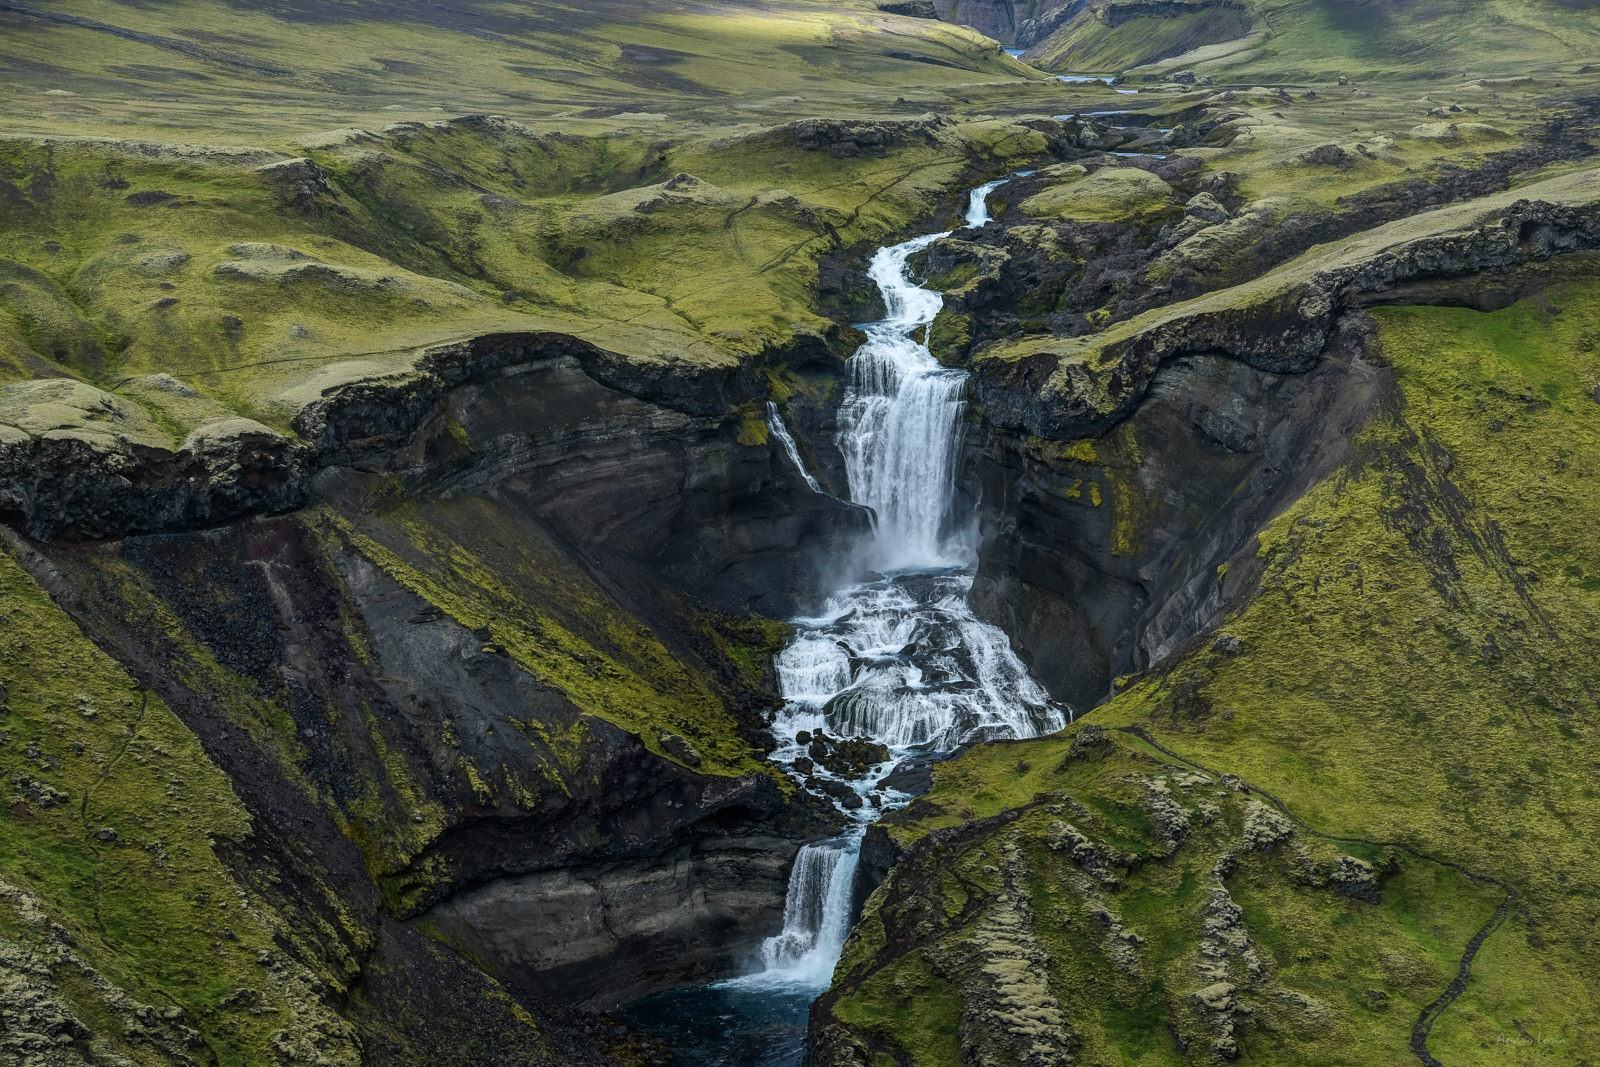 """close up"" of Ófærufoss (  The Impassable), Eldgjá Fissure.   (XF 50-140mm f2.8 at 50mm 1/320 f6.4 ISO200)"